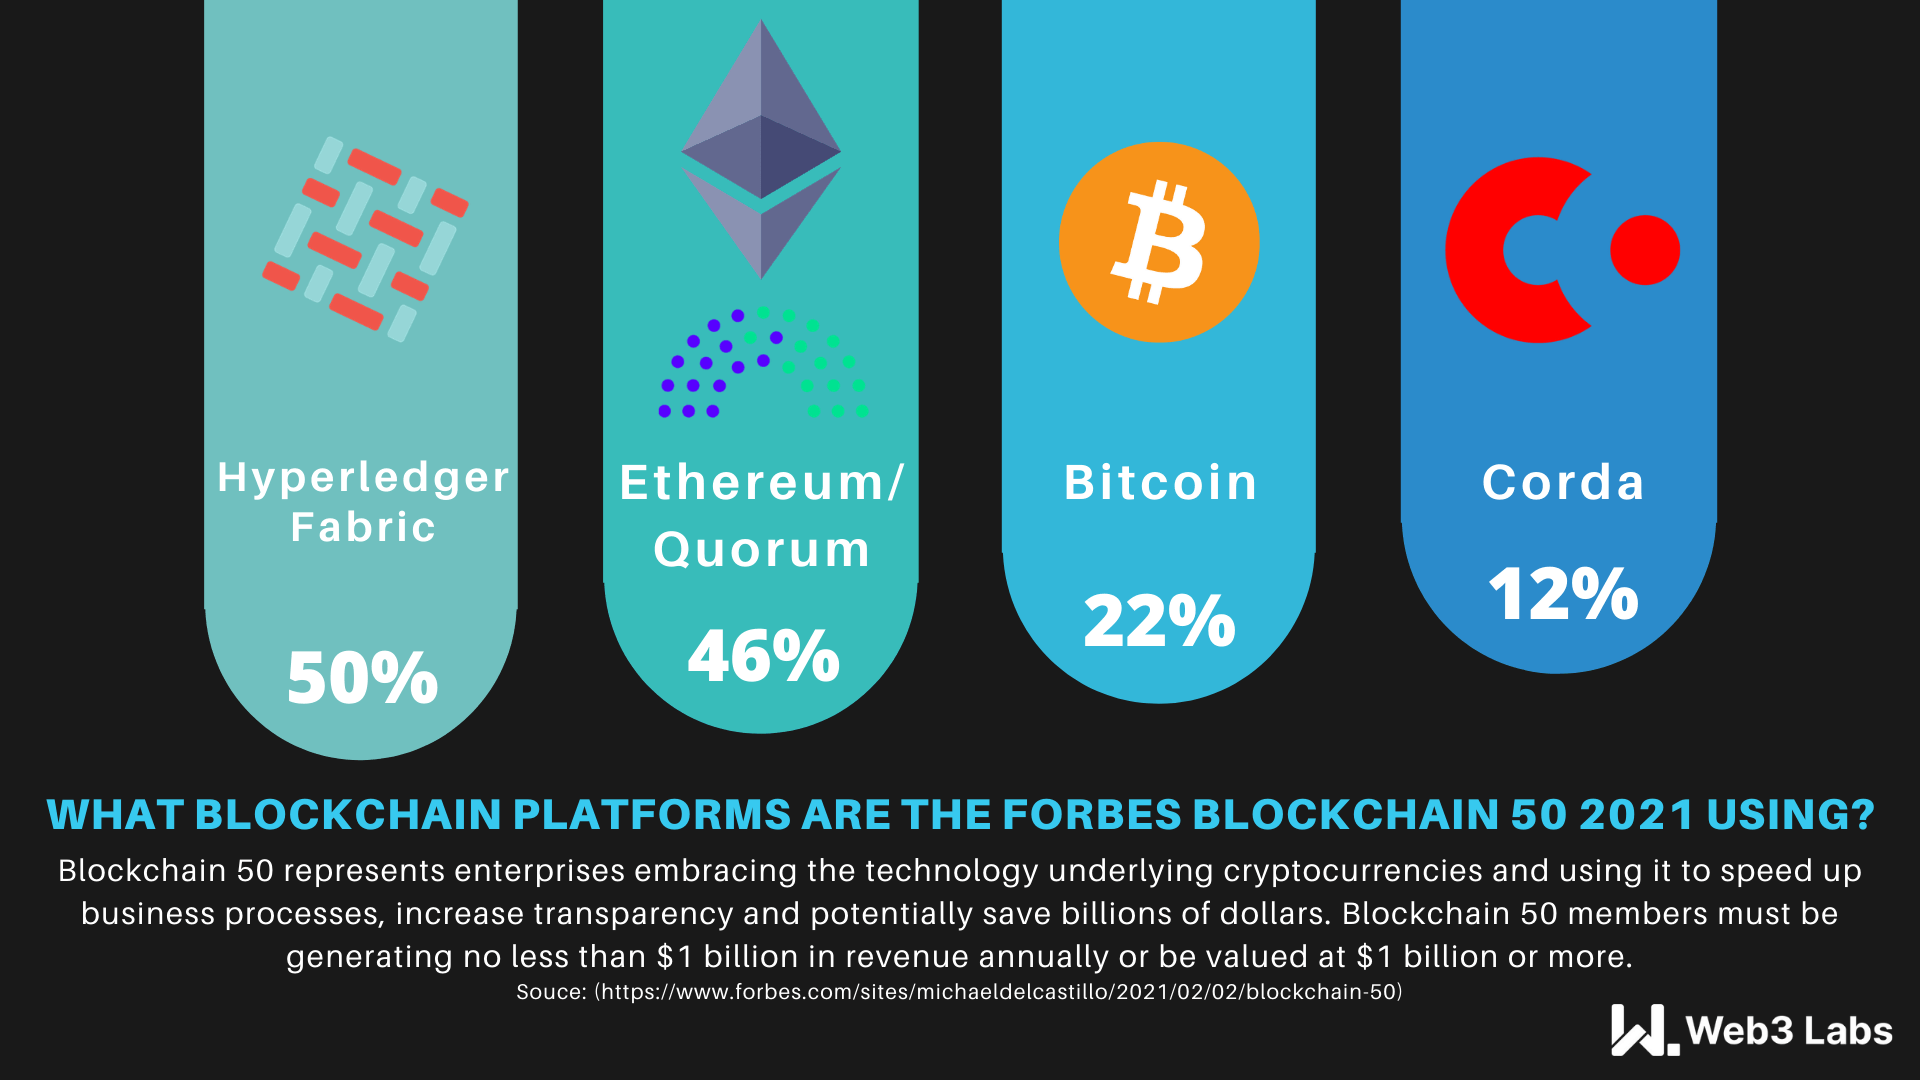 Forbes Blockchain 50 infographic 2021